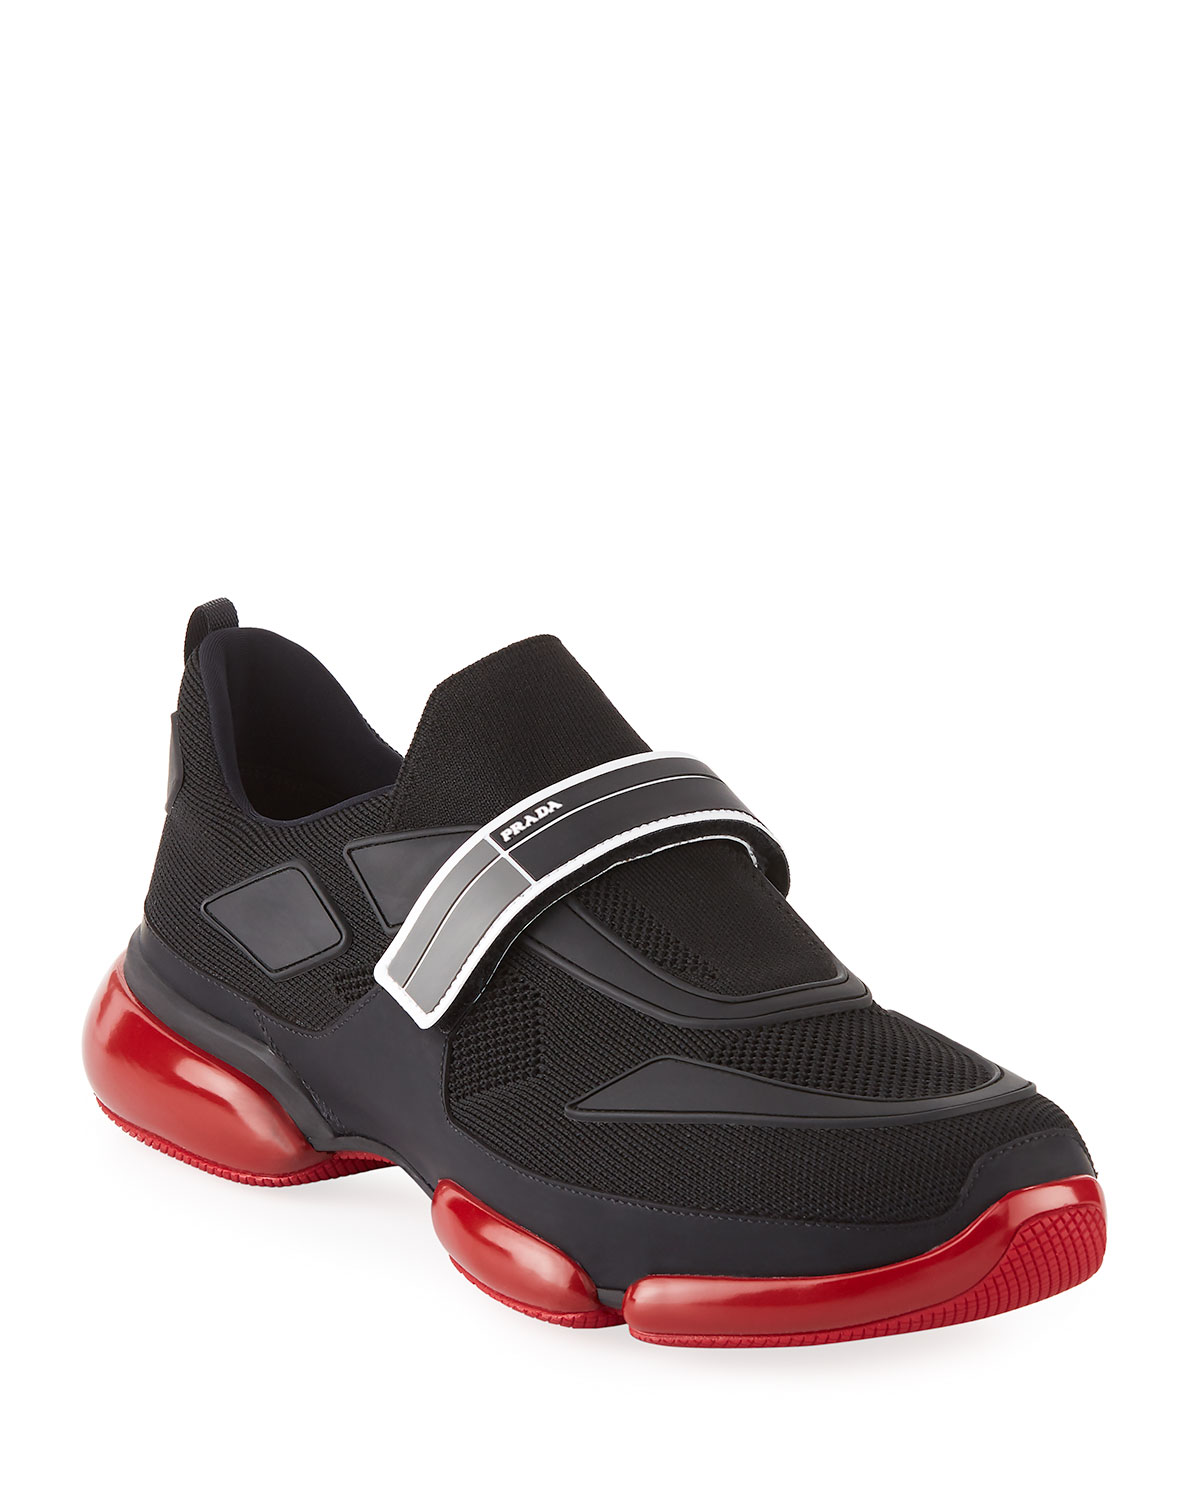 prada sneakers with straps